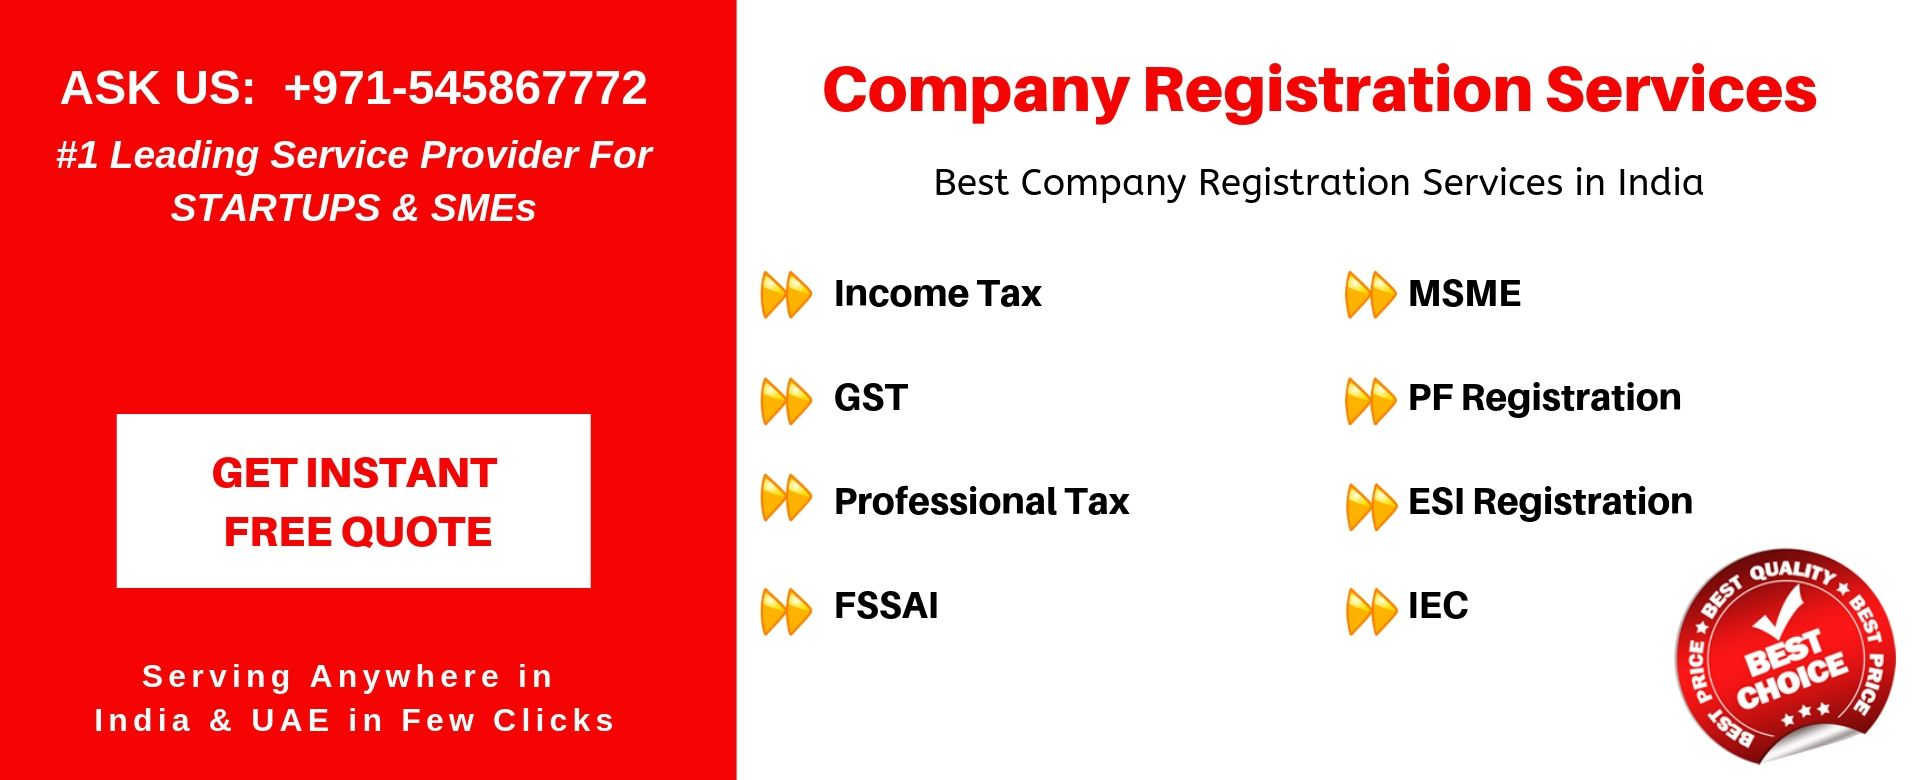 company registration services in india